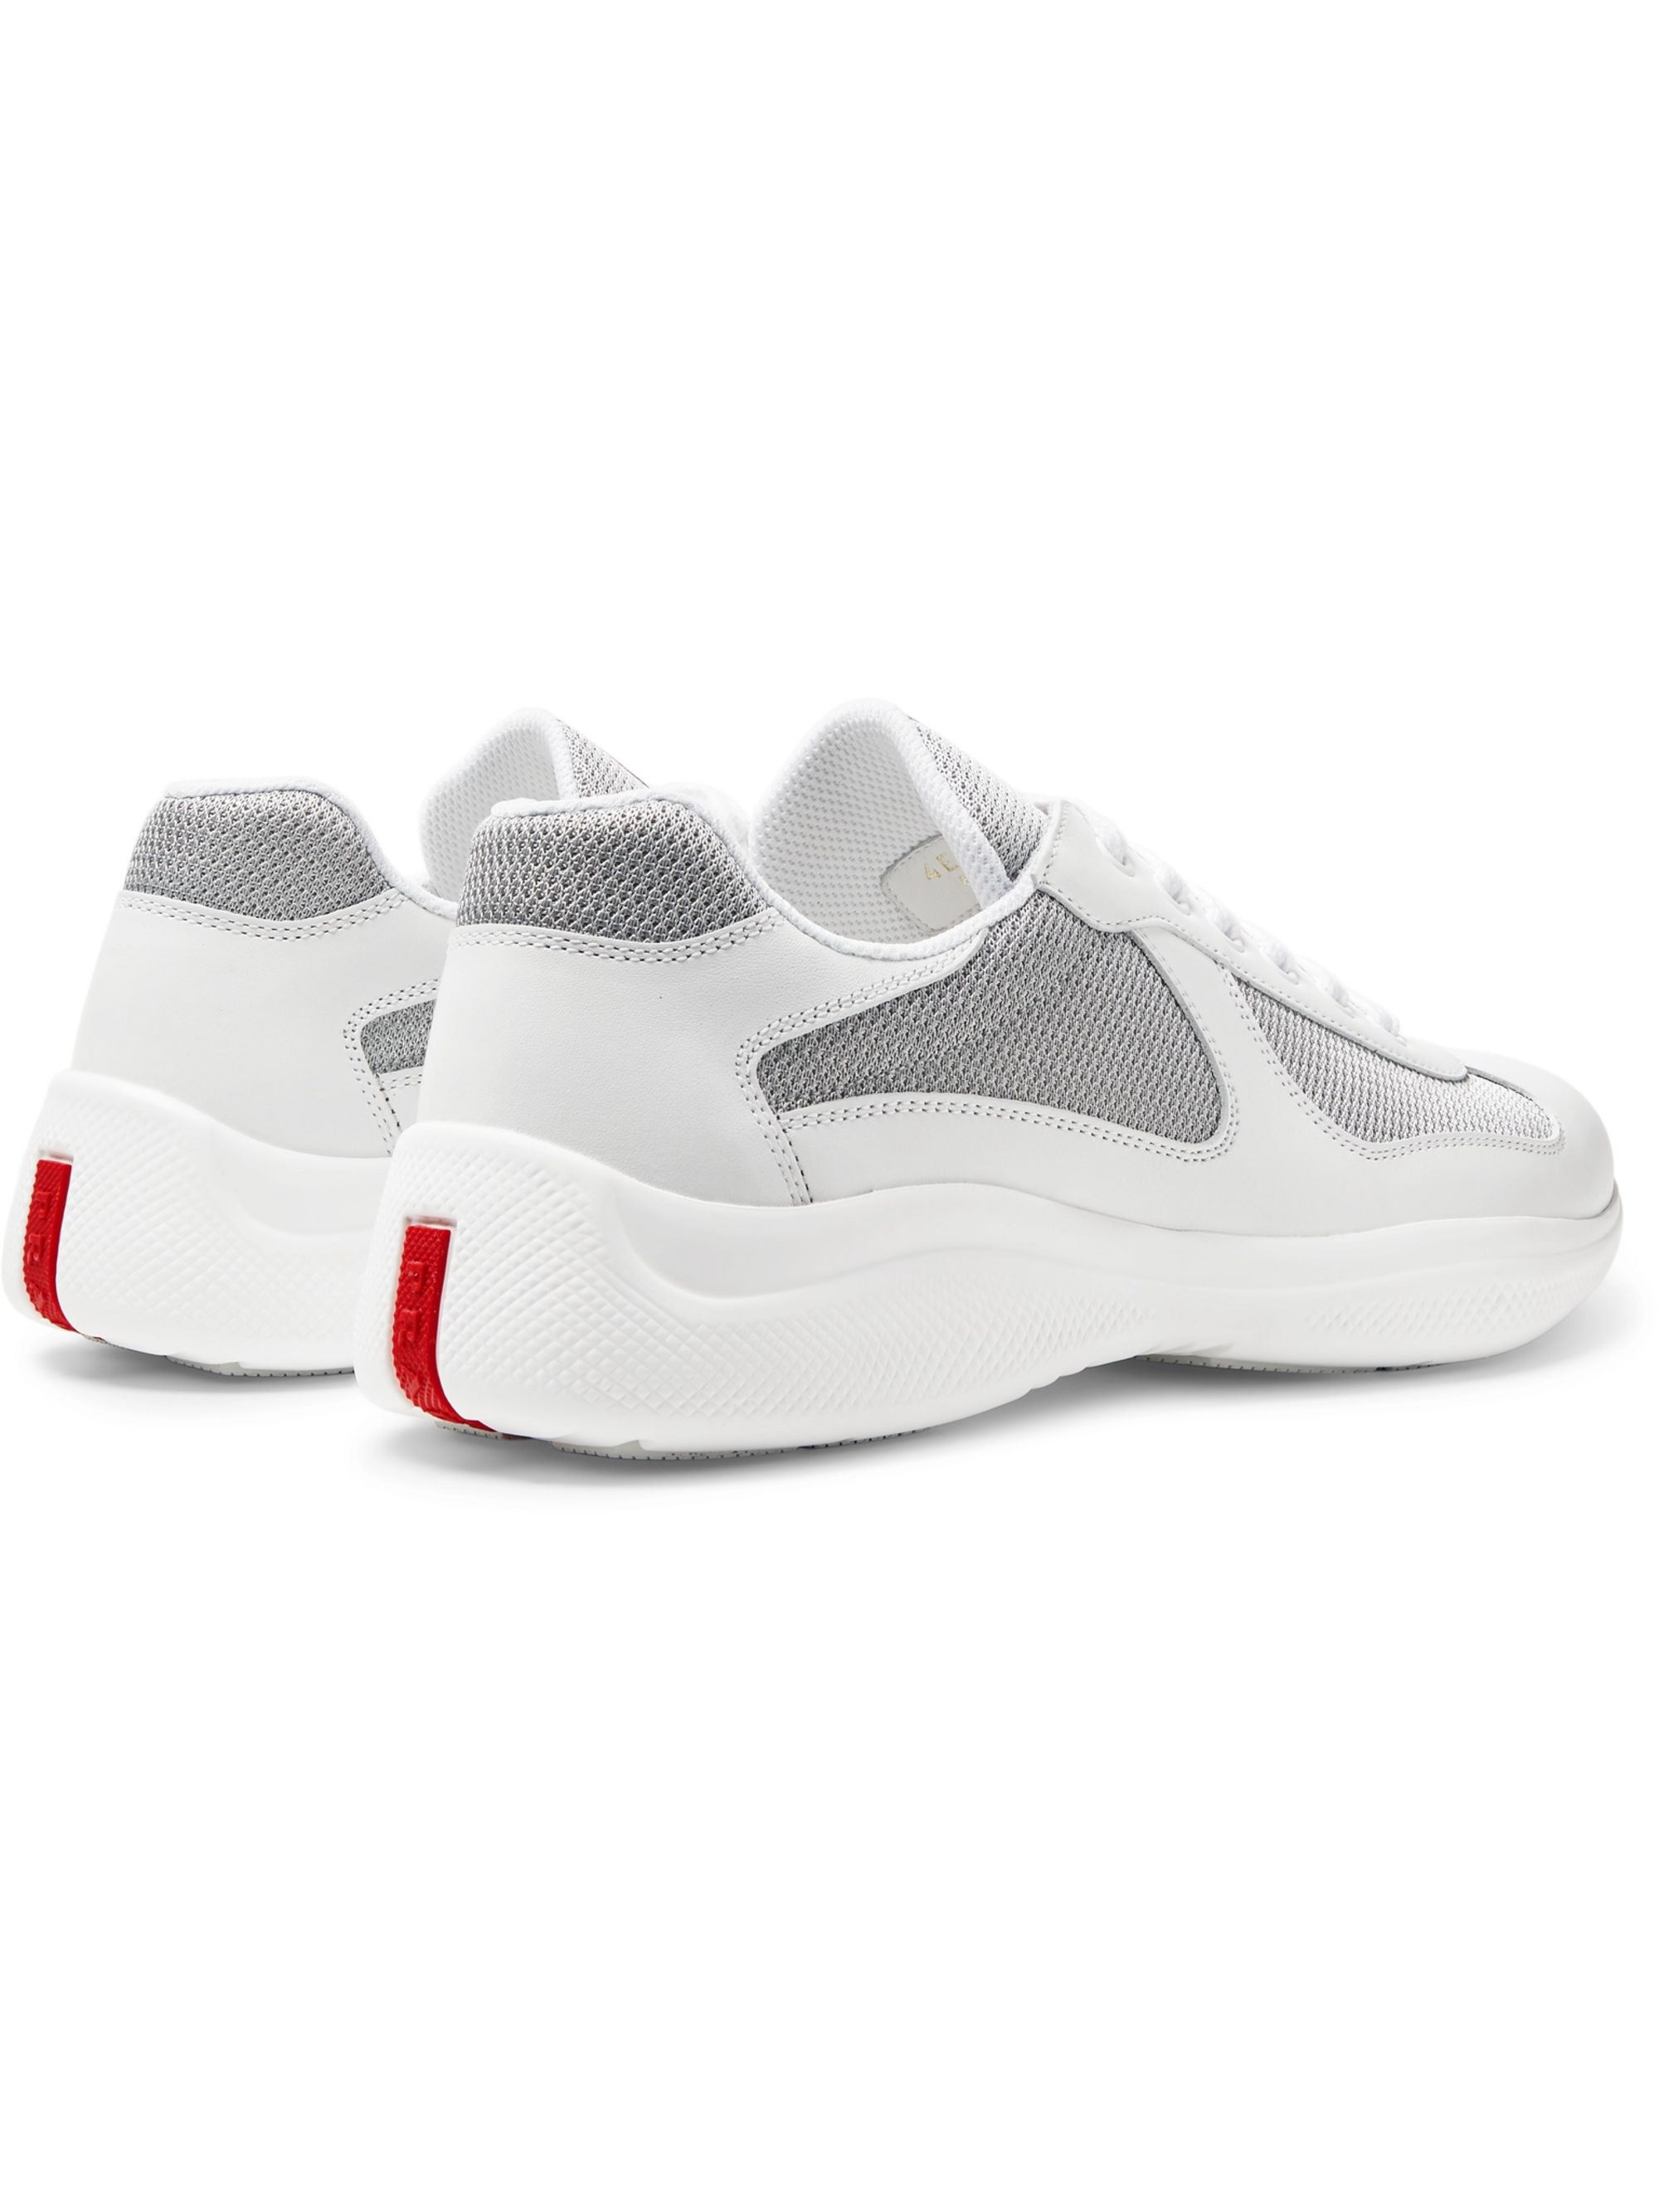 Prada America's Cup Leather and Mesh Sneakers